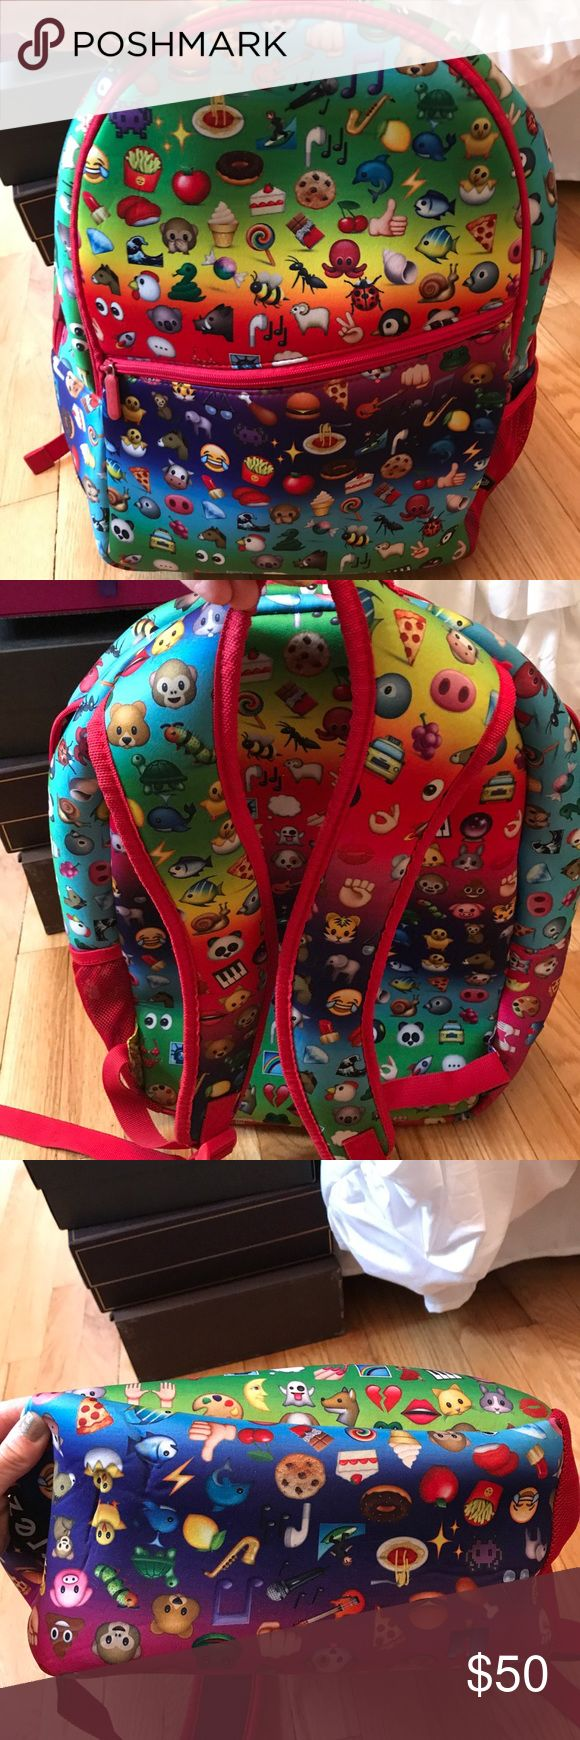 Zara Terez Large Emoji Backpack Like new, adorable emoji colorful backpack. No stains, rips or flaws. Only slight wrinkling on the bottom. Your child will look so cool walking into school with this bright and bold backpack!! Zara Terez Bags Backpacks